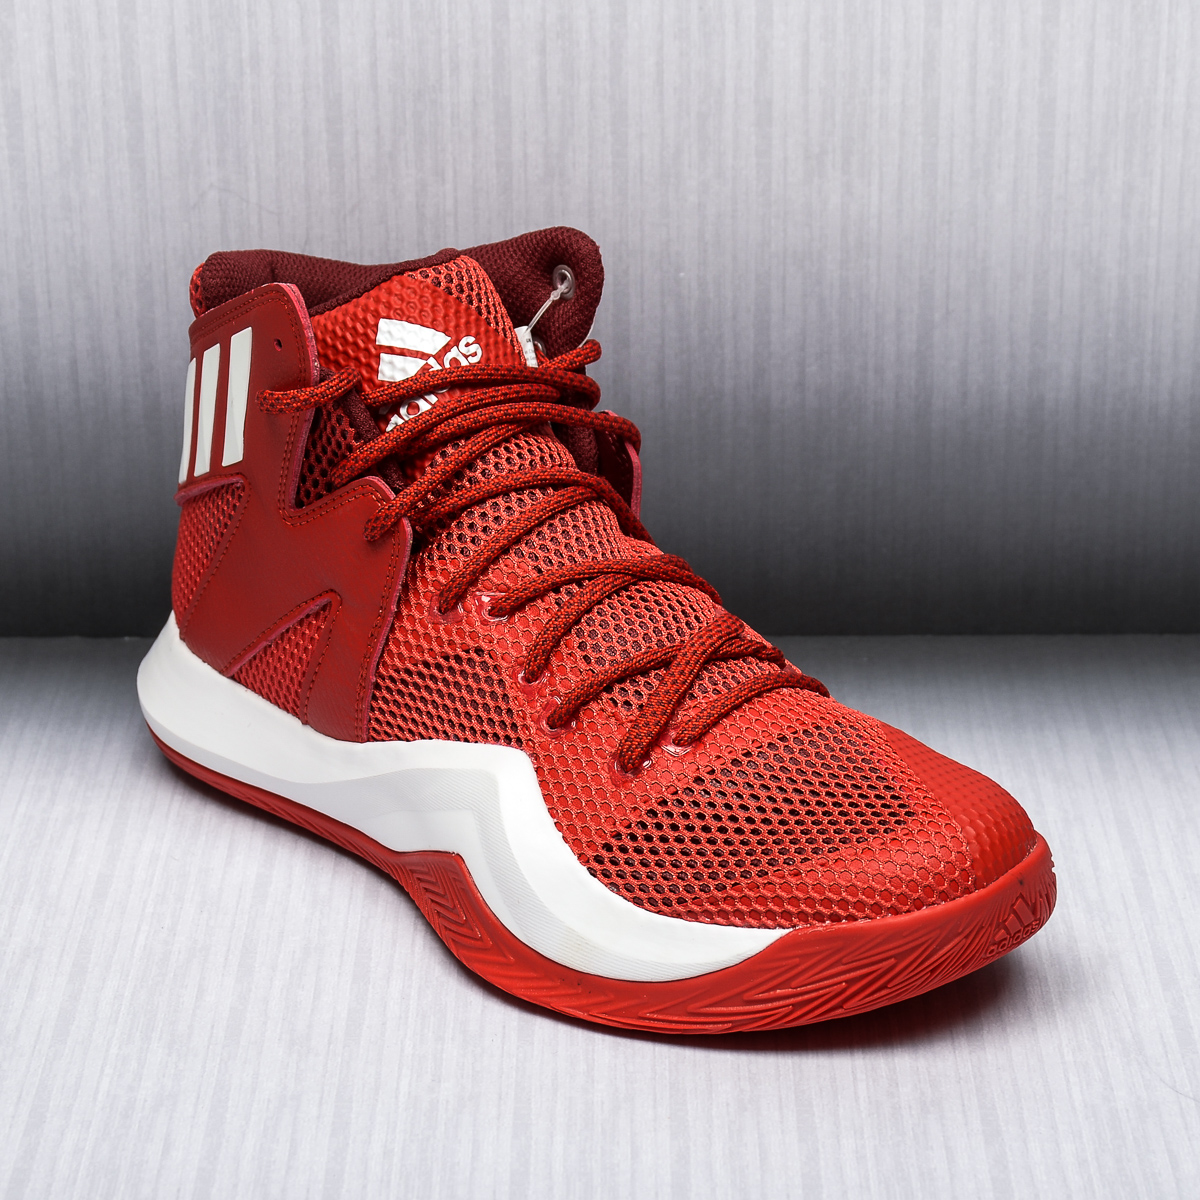 adidas Crazy Bounce Basketball Shoes - BASKETBALL SHOES Adidas basketball shoes - Superfanas.lt